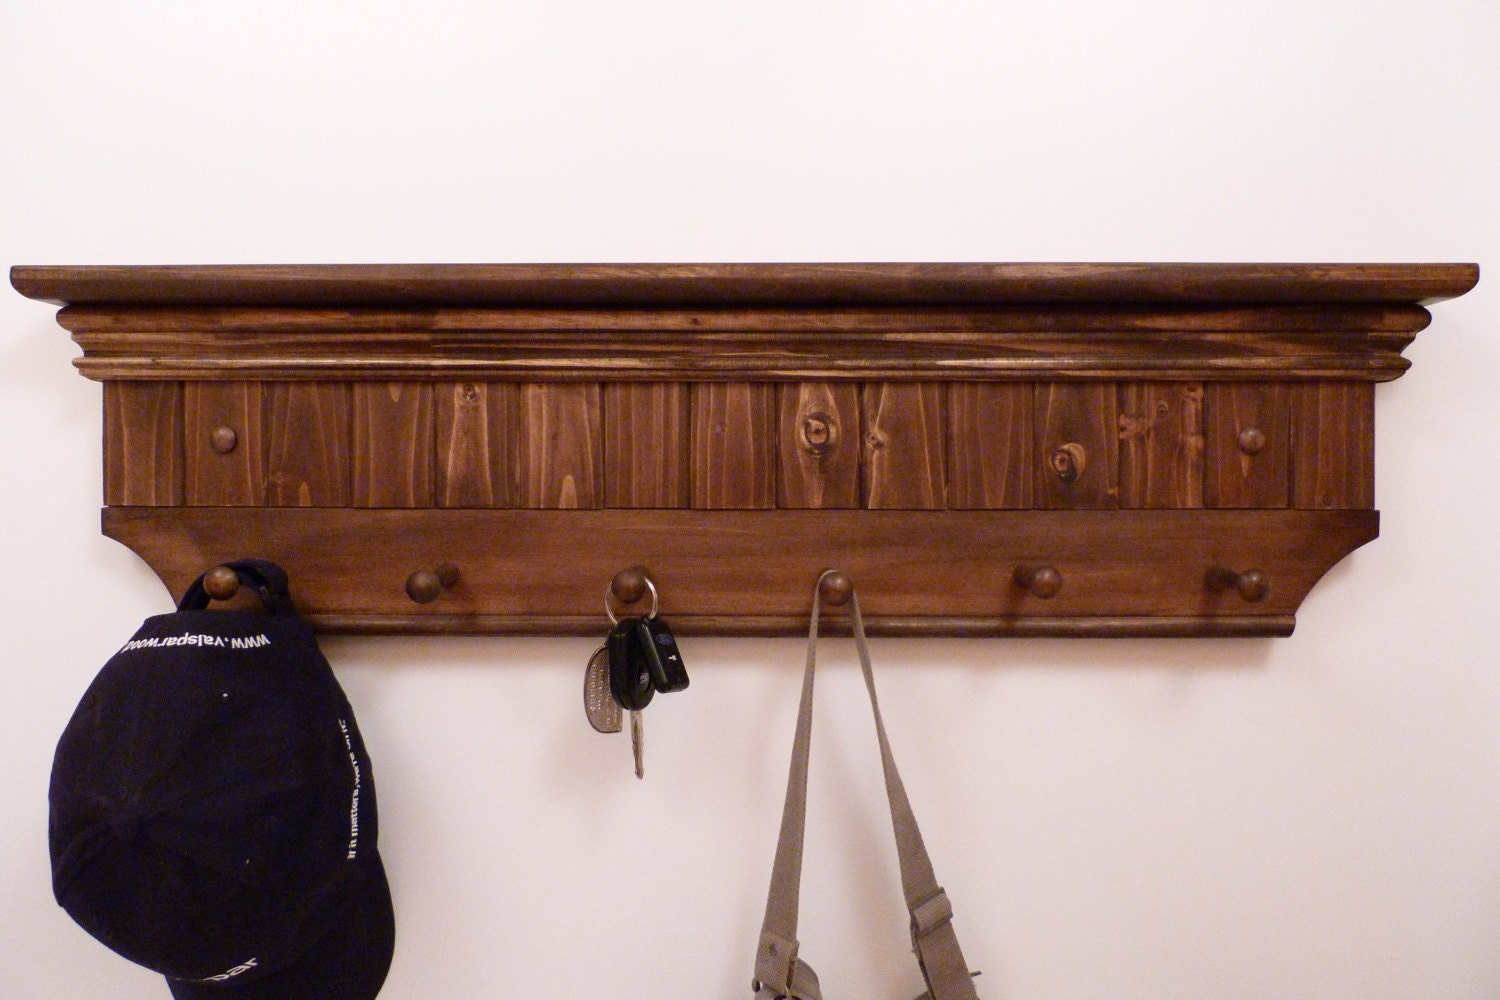 entryway coat rack wood wall shelf 32 inches full color. Black Bedroom Furniture Sets. Home Design Ideas